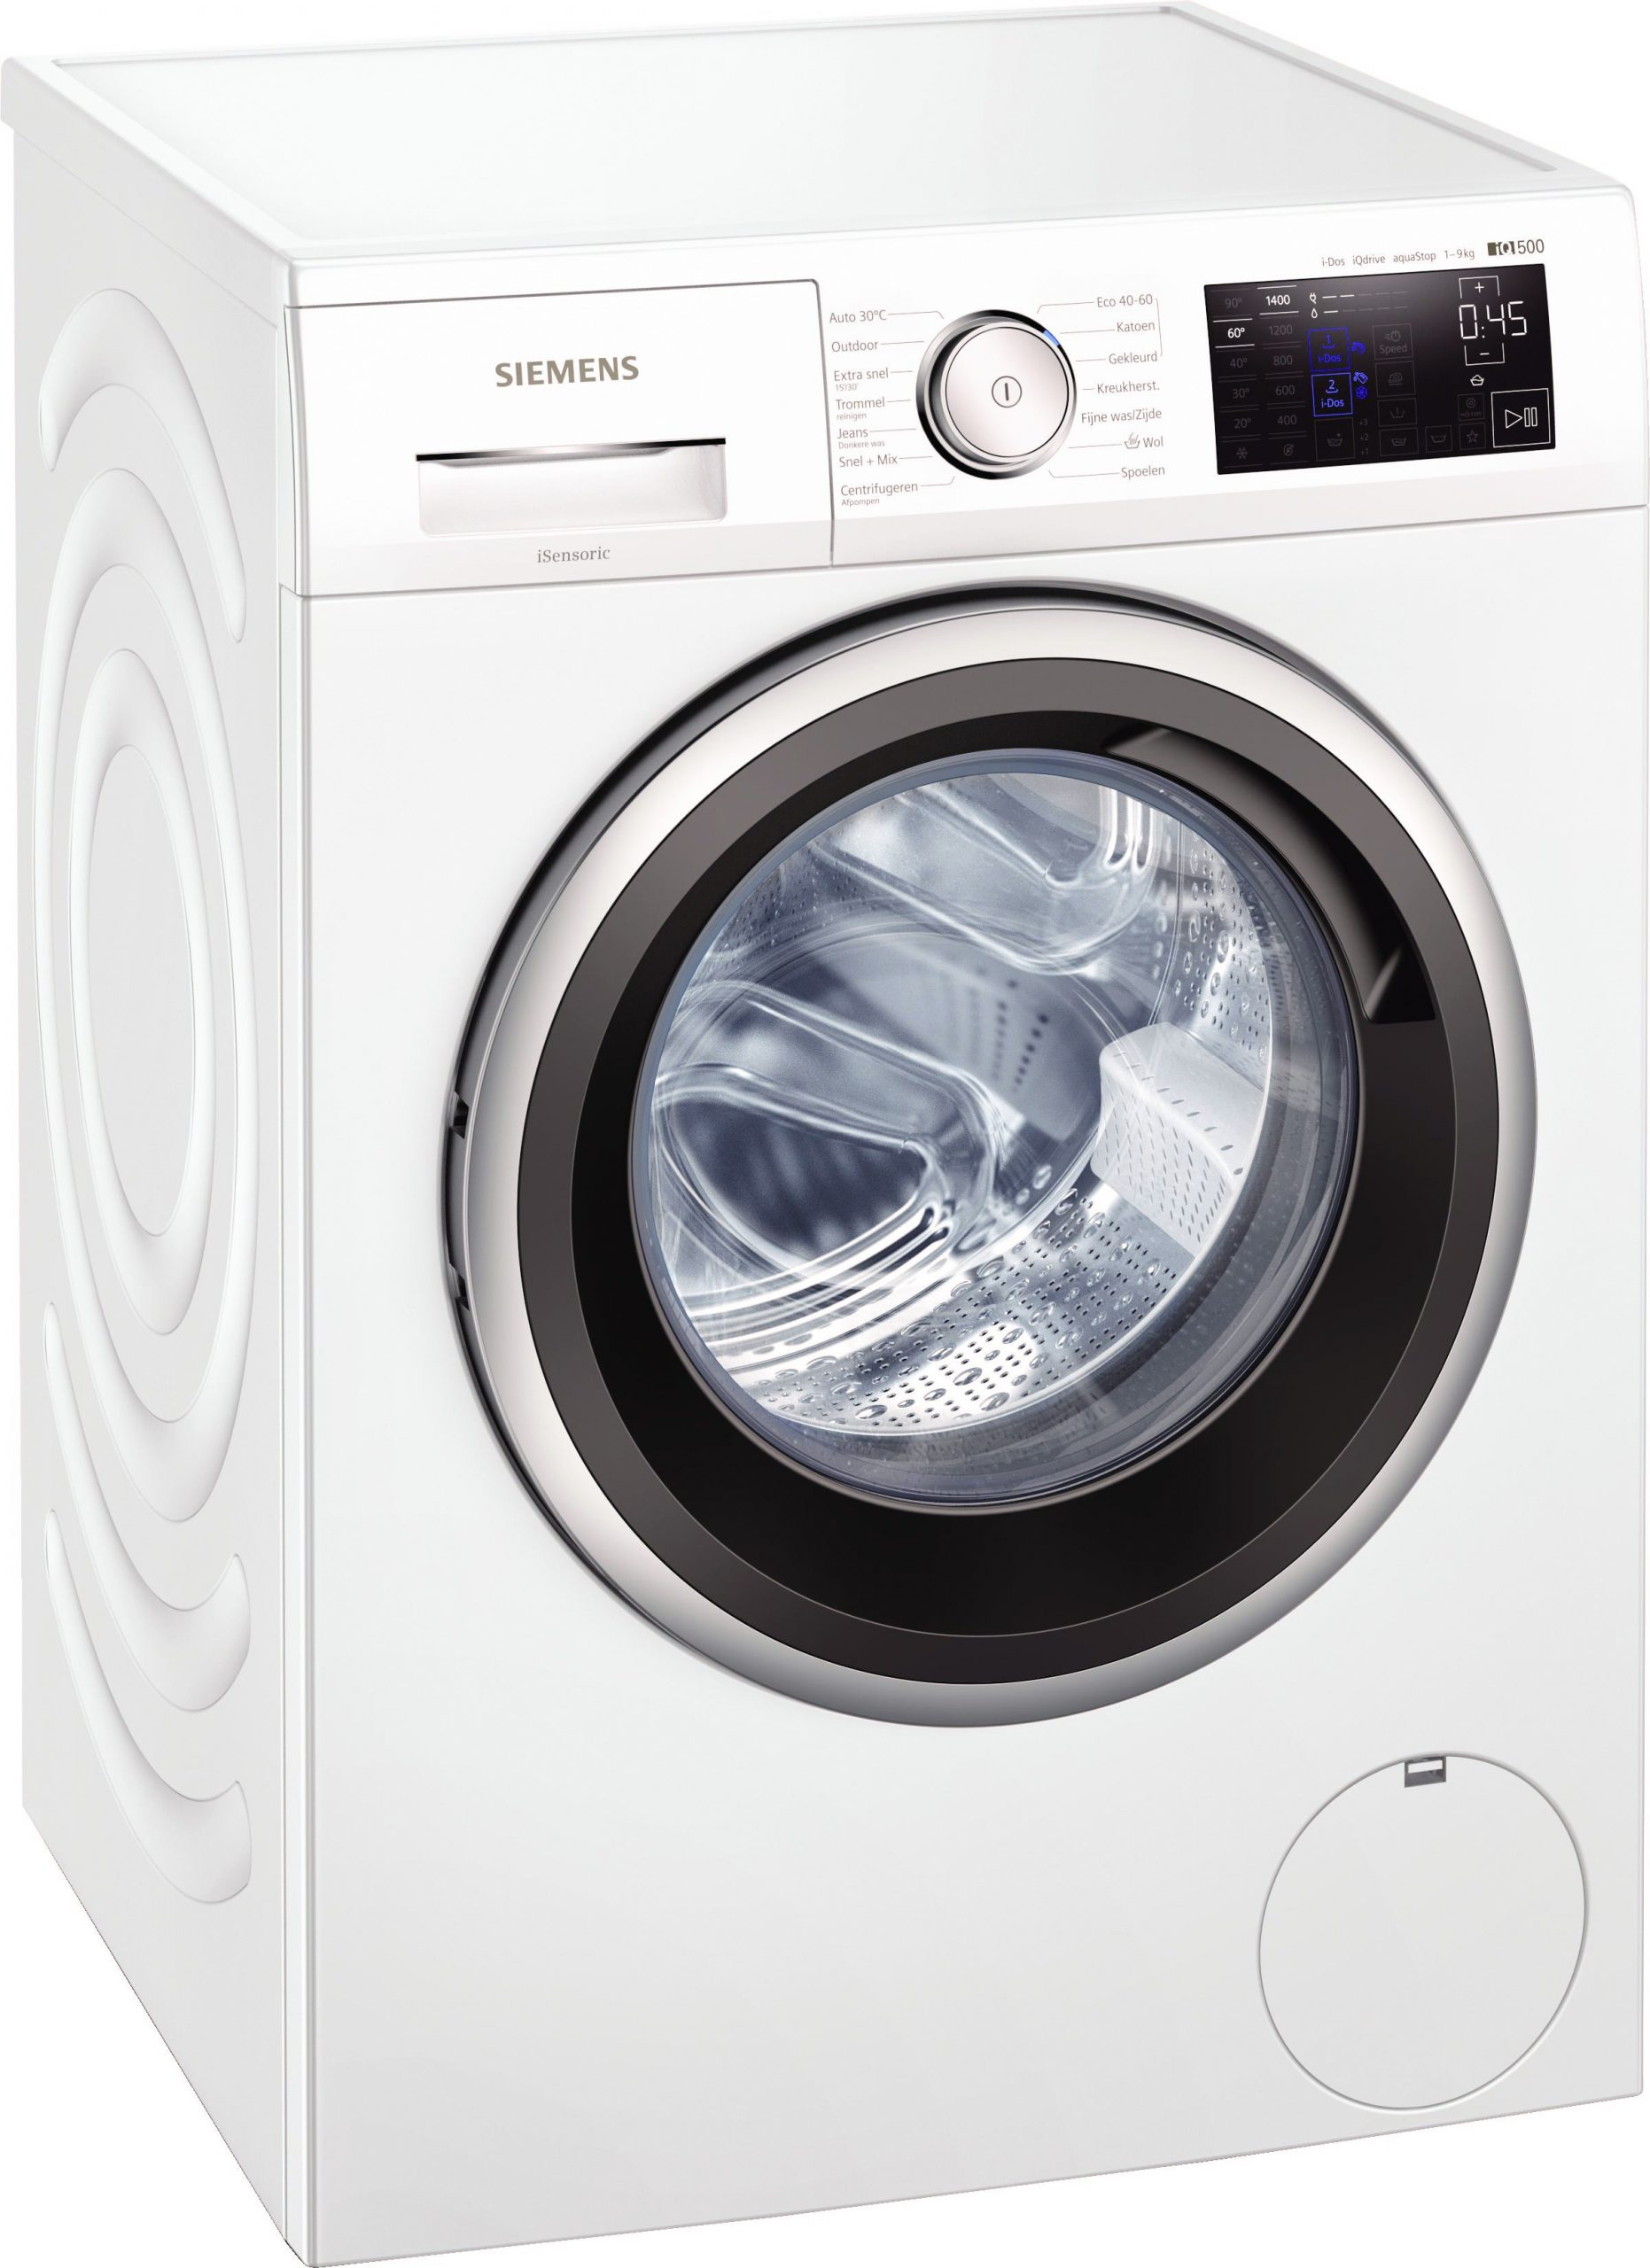 Siemens WM14UP75NL wasmachine